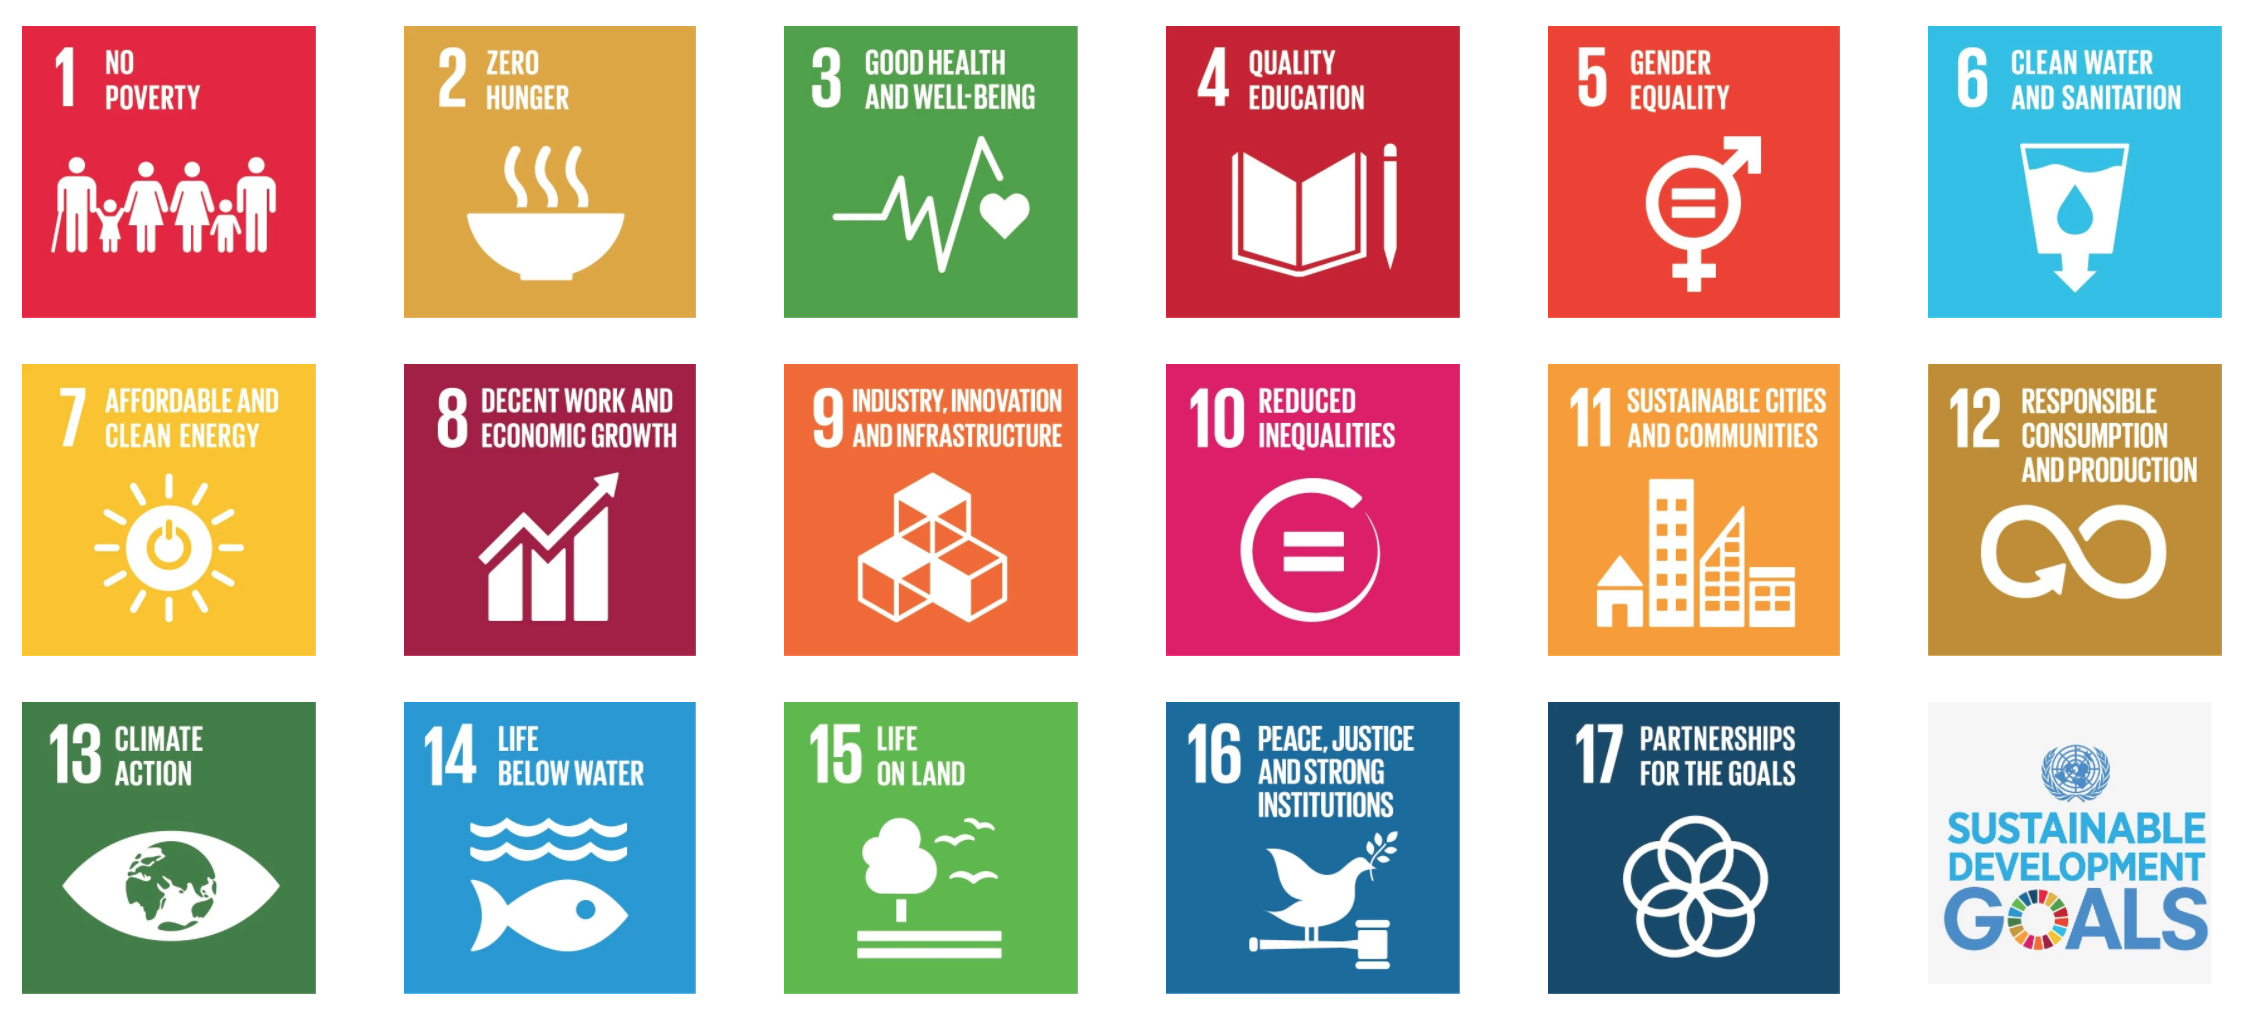 Sustainable Development Goals by the UN